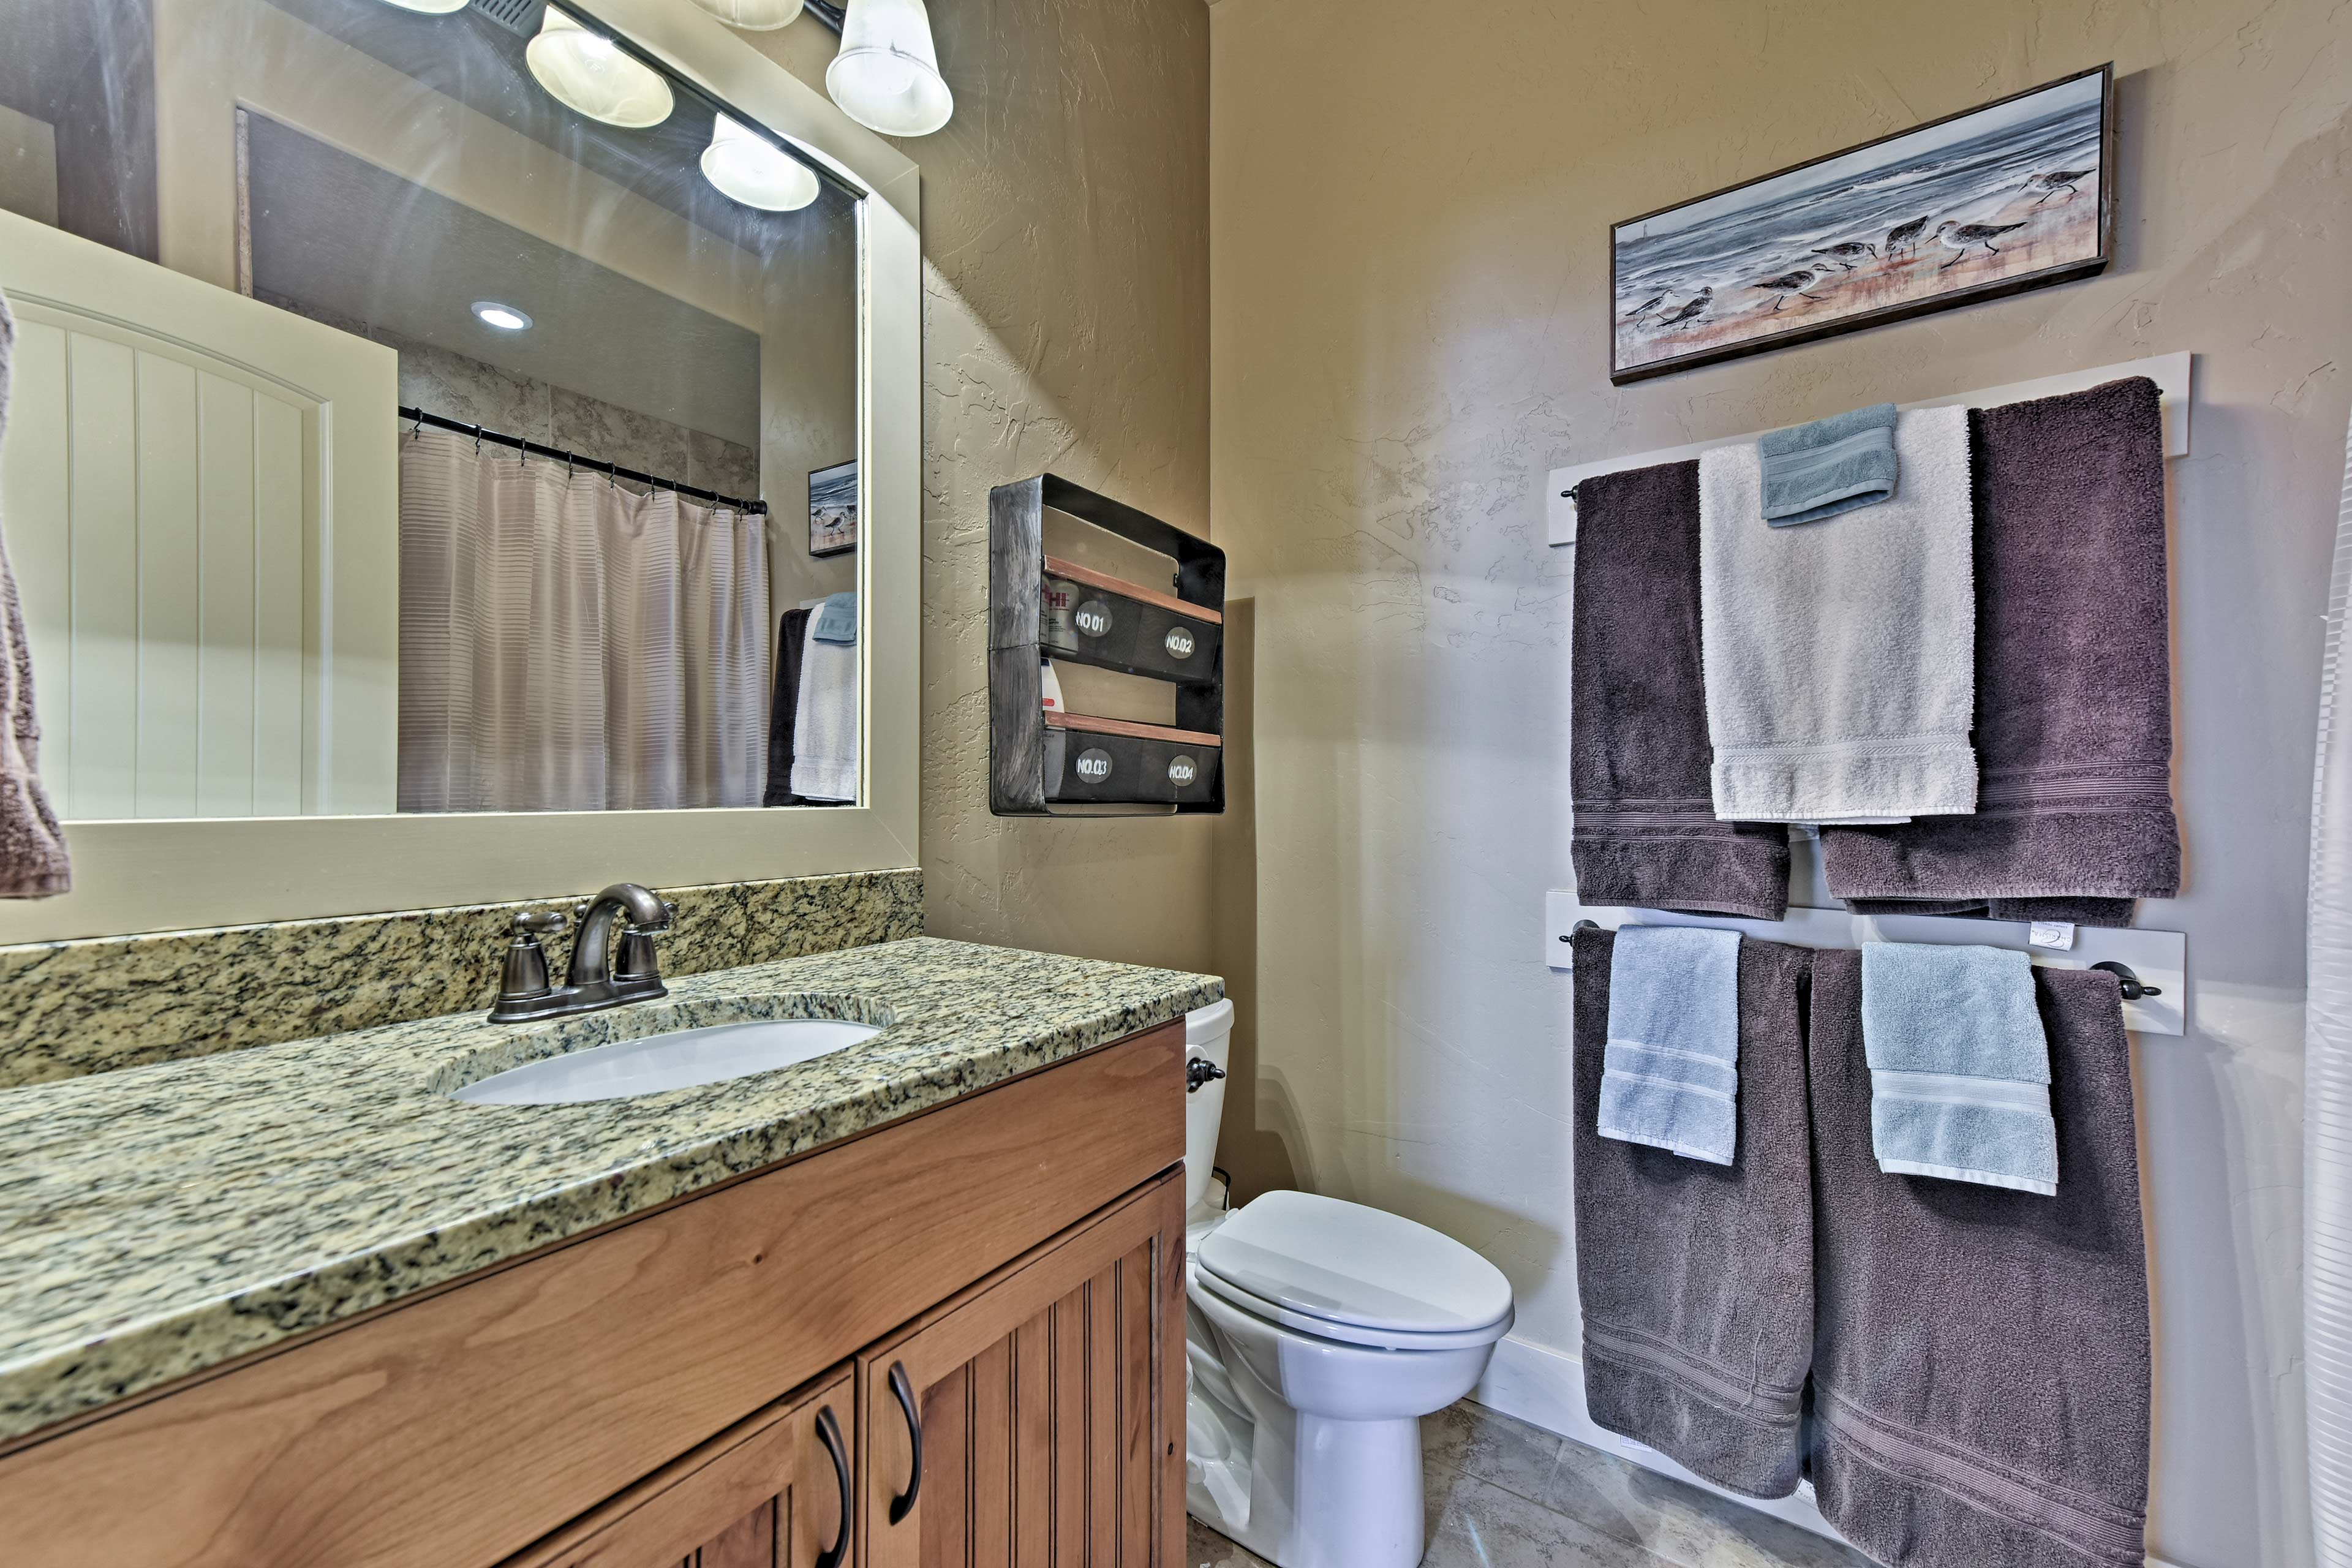 Wash up in this spacious bathroom.